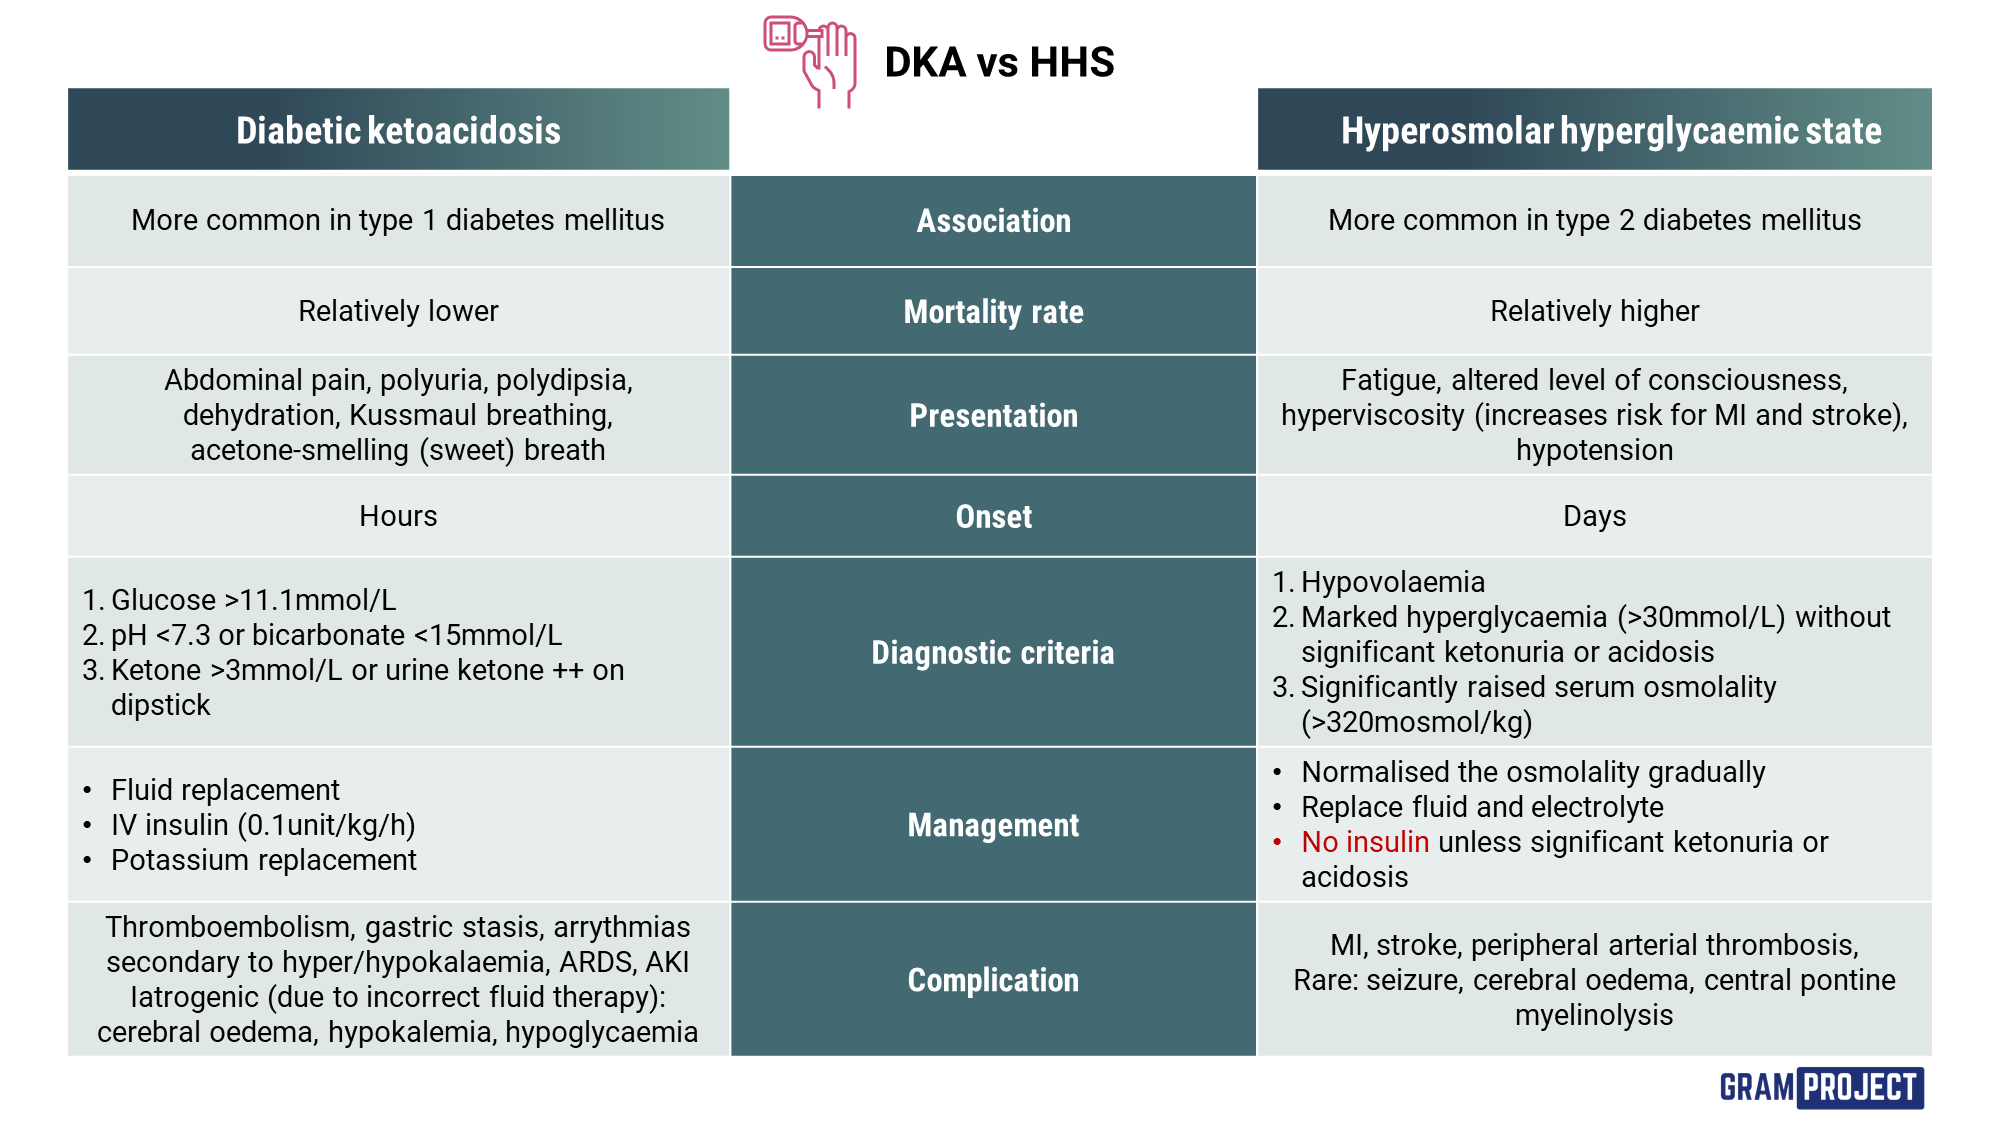 Comparison table between diabetic ketoacidosis and Hyperosmolar hyperglycaemia state